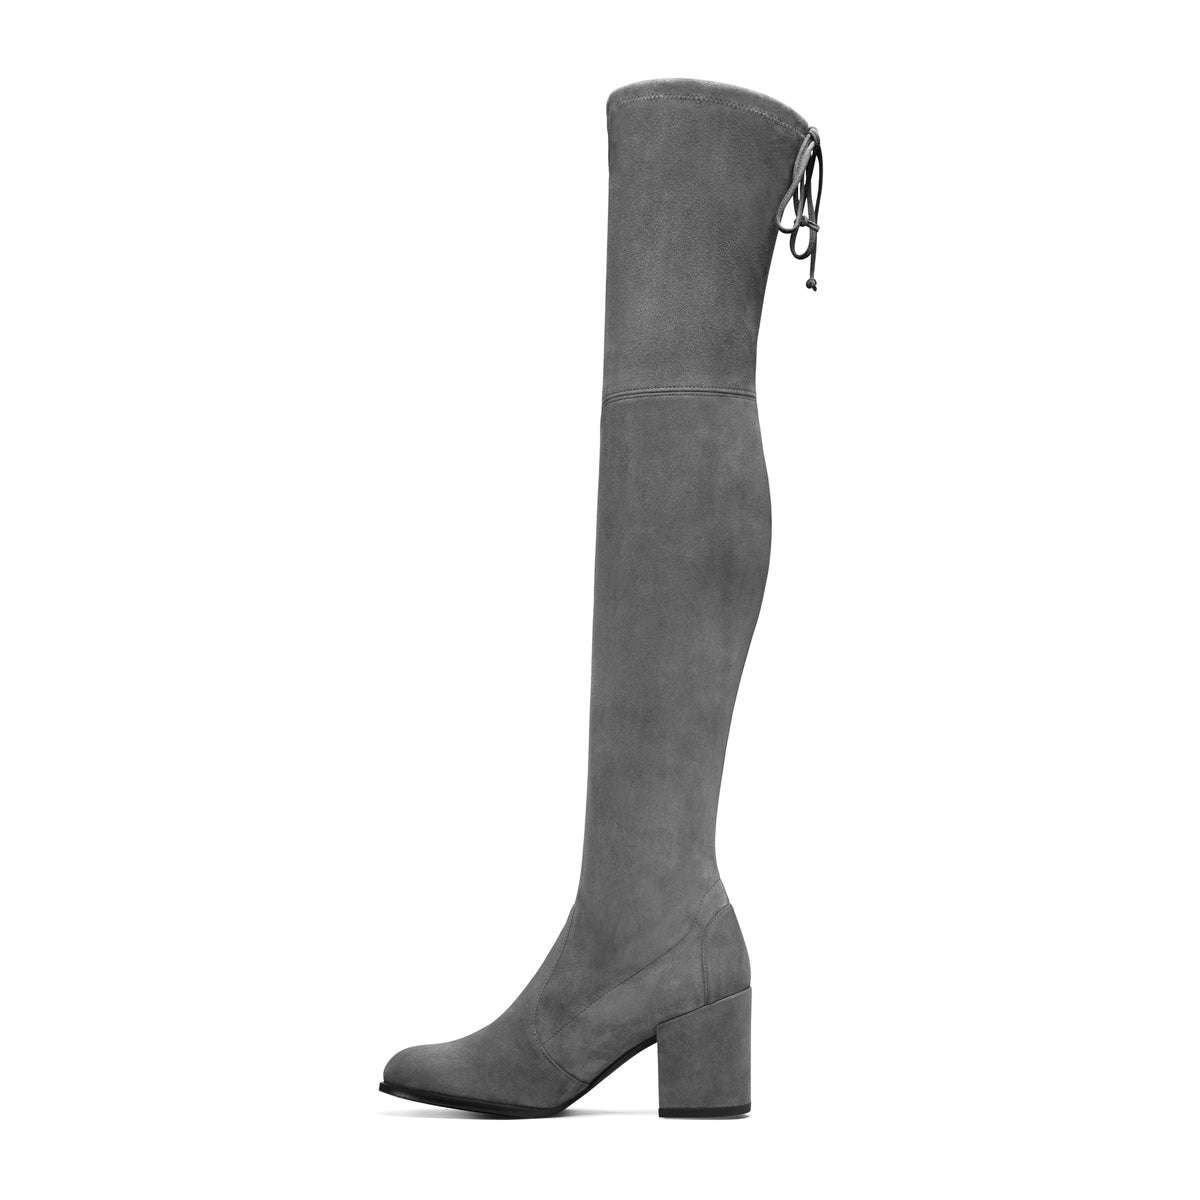 Tieland Block Heel Thigh High Suede Boots